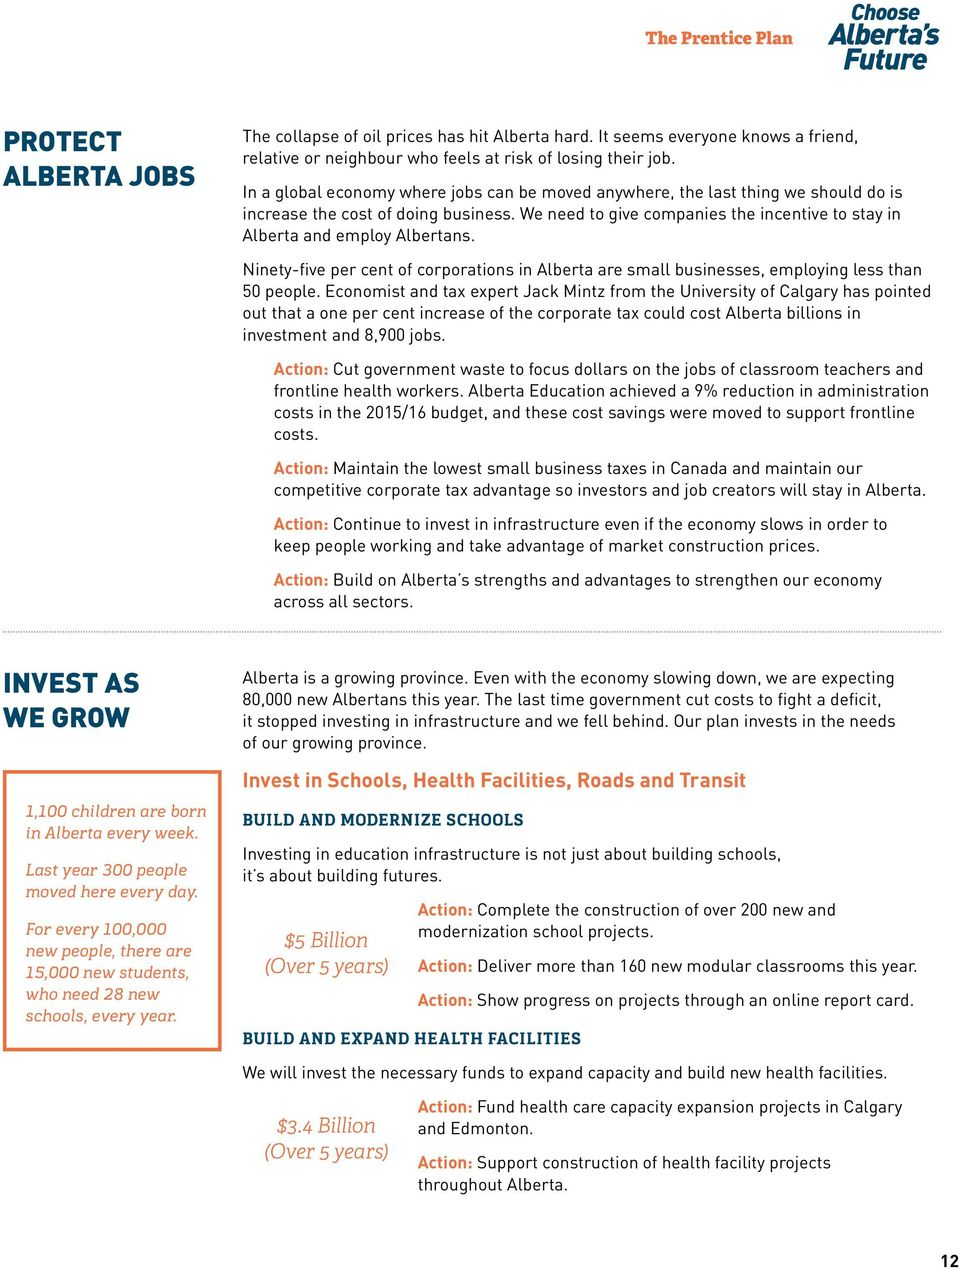 We need to give companies the incentive to stay in Alberta and employ Albertans. Ninety-five per cent of corporations in Alberta are small businesses, employing less than 50 people.